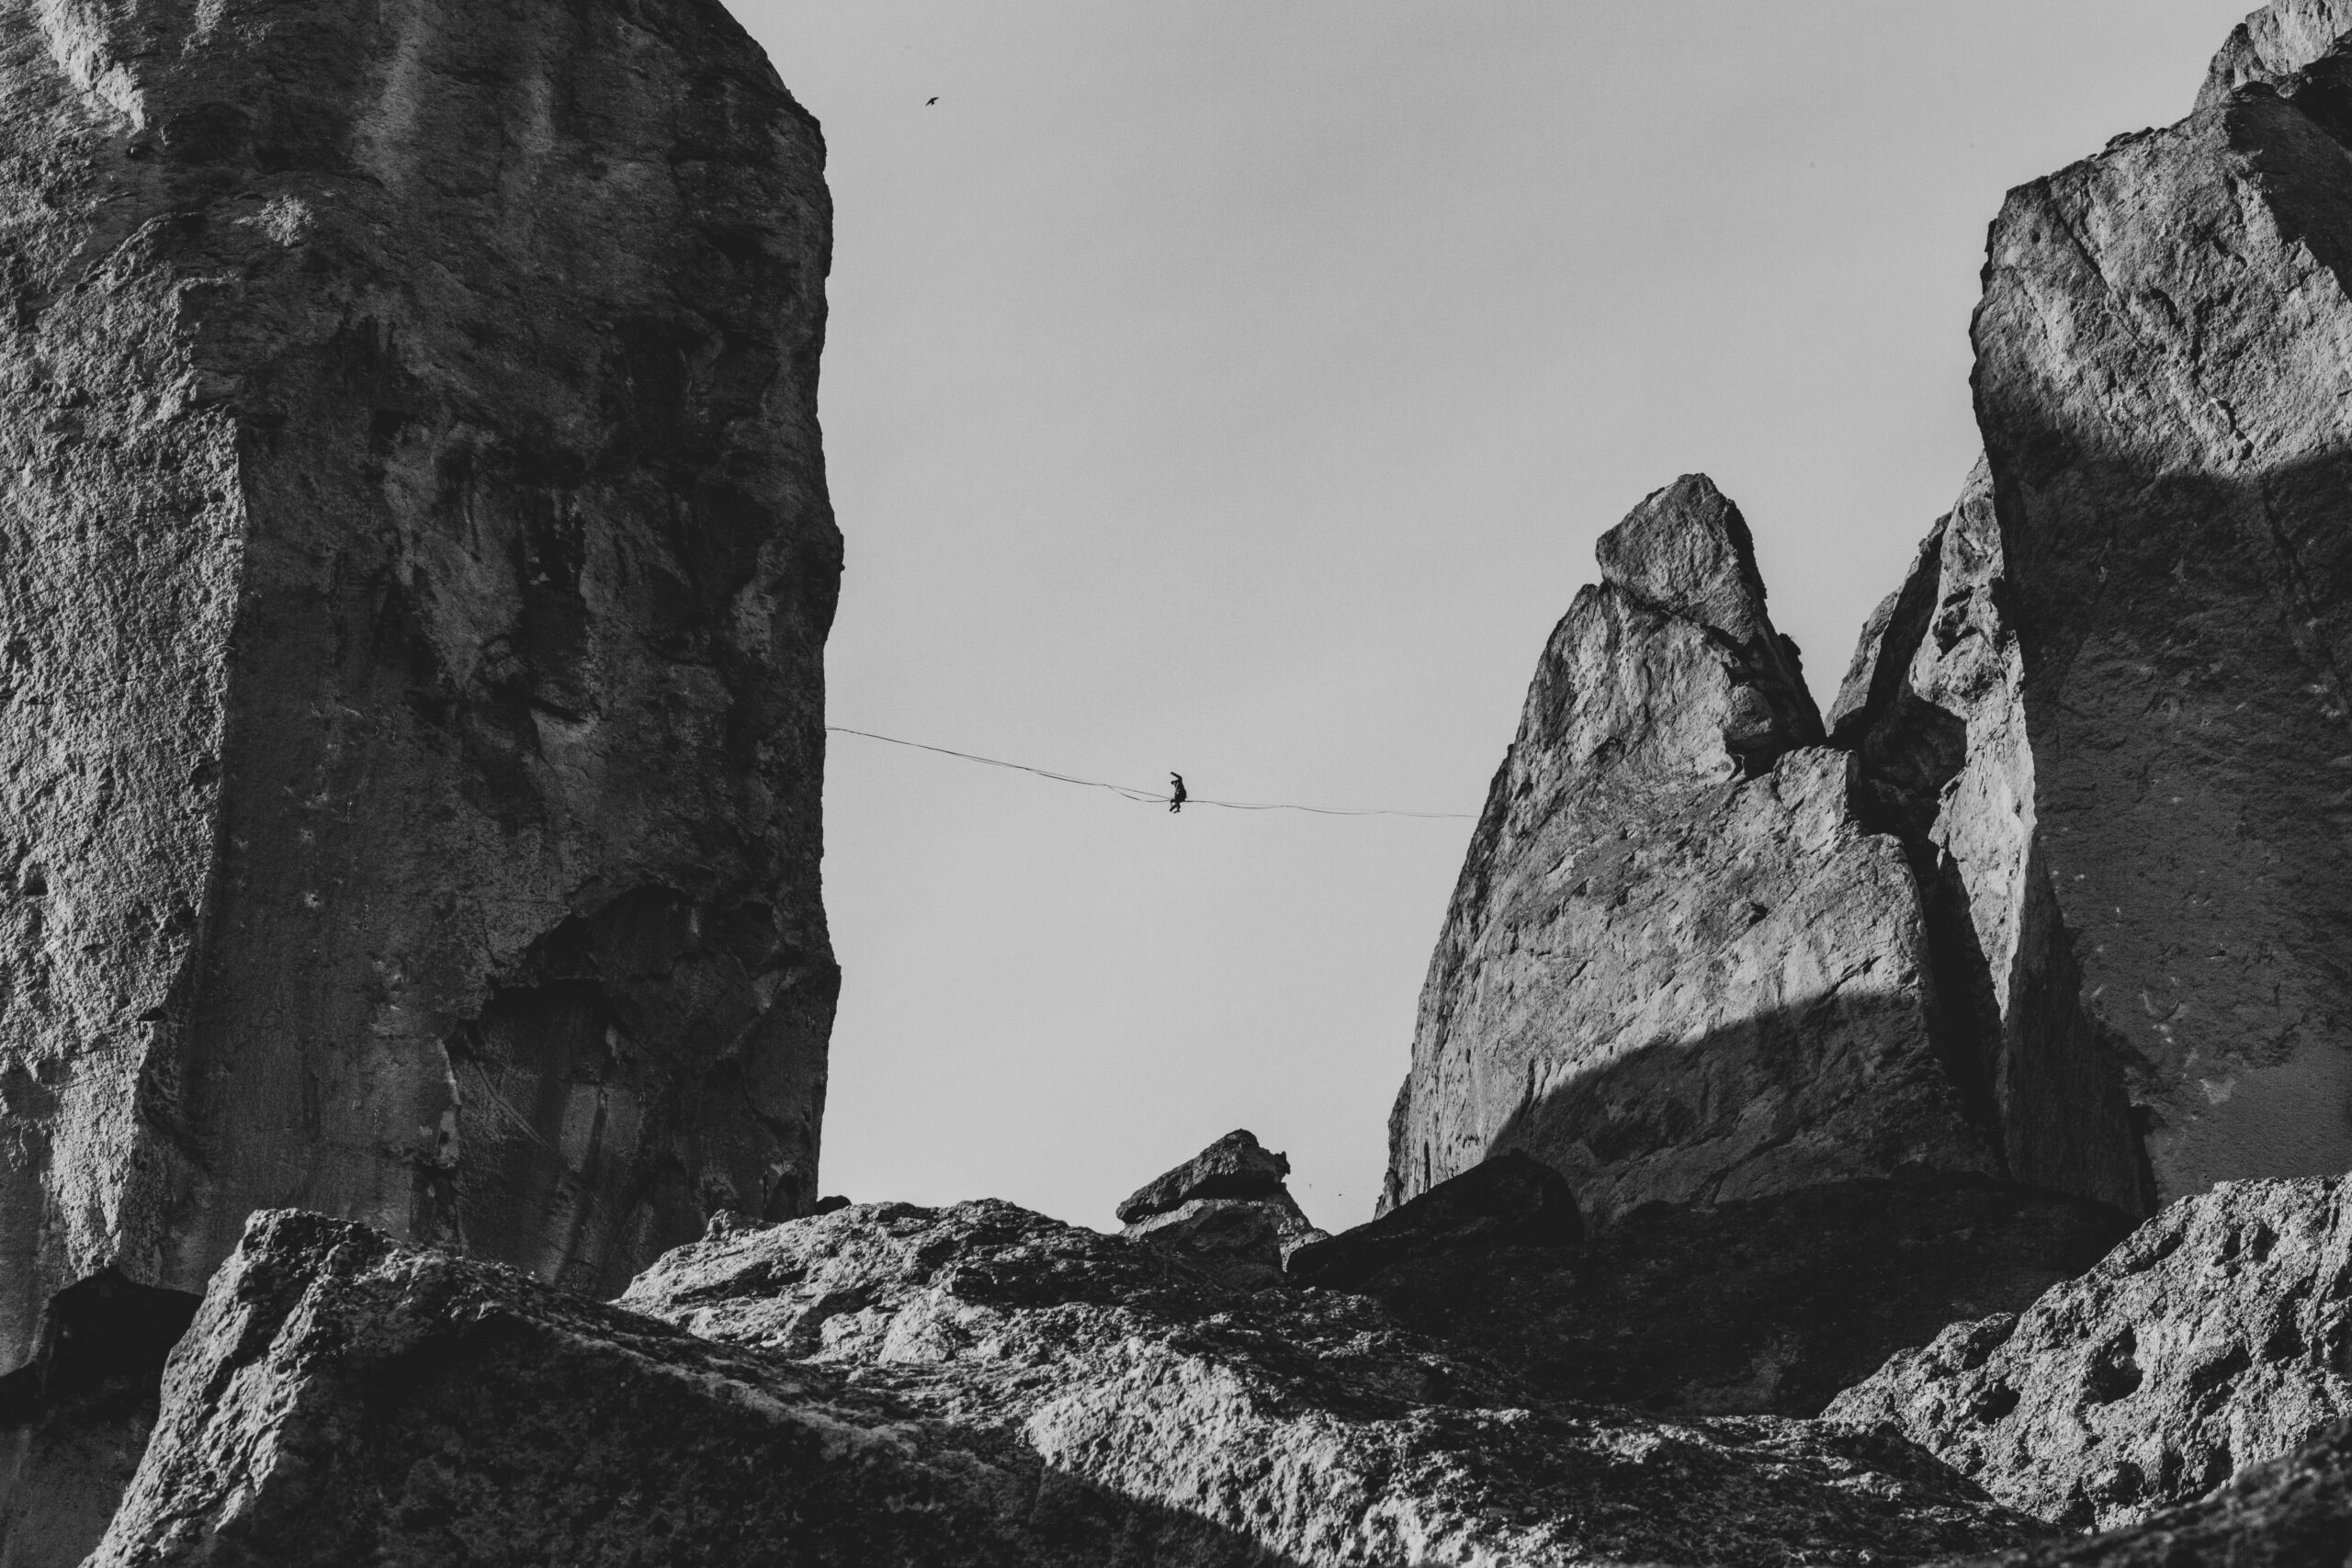 Highlining and Slacklining are balancing sports. Man practicing Highline between two peaks.